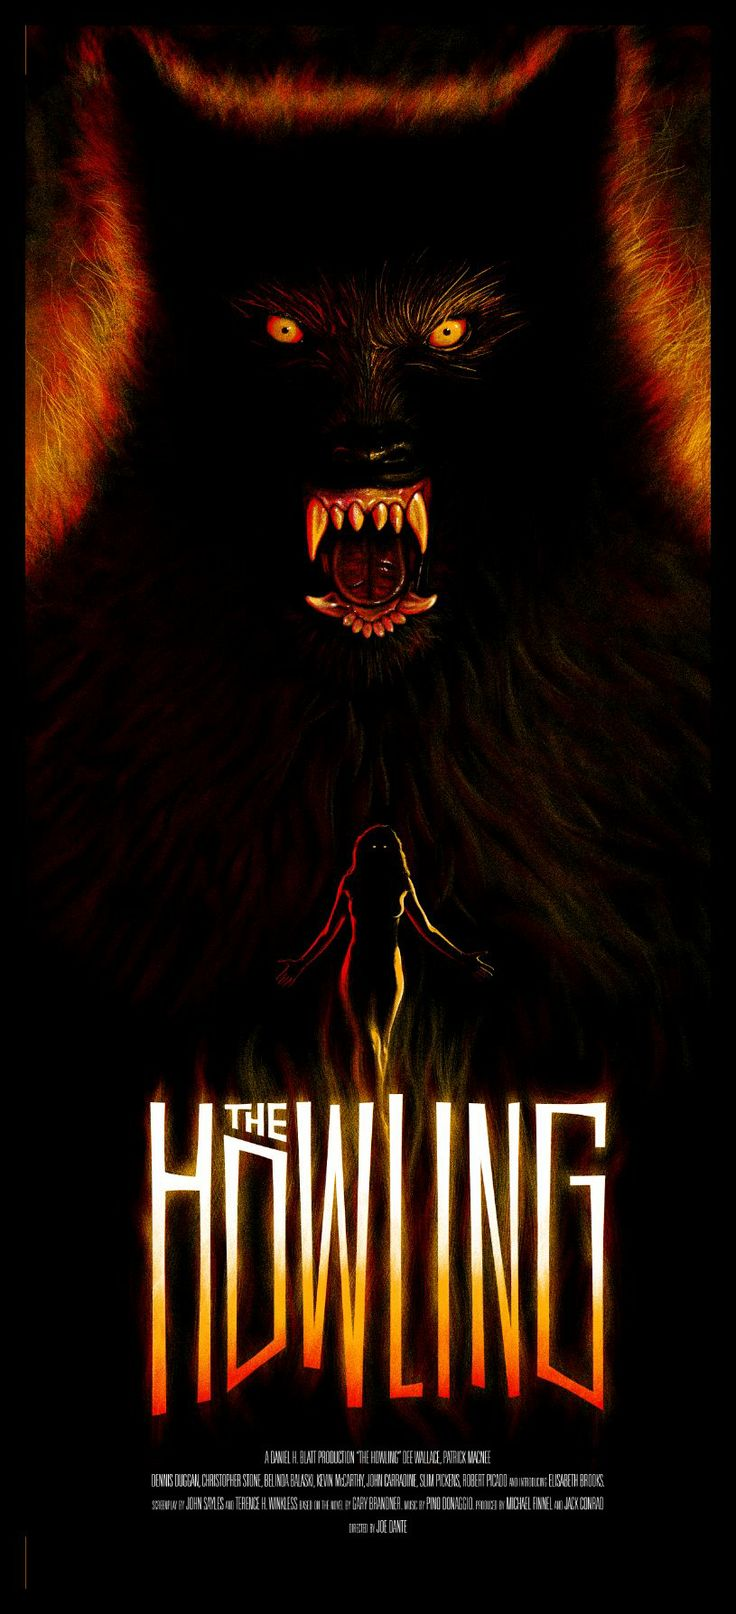 The Howling. Not much of a fan of the movie but this poster is rad.